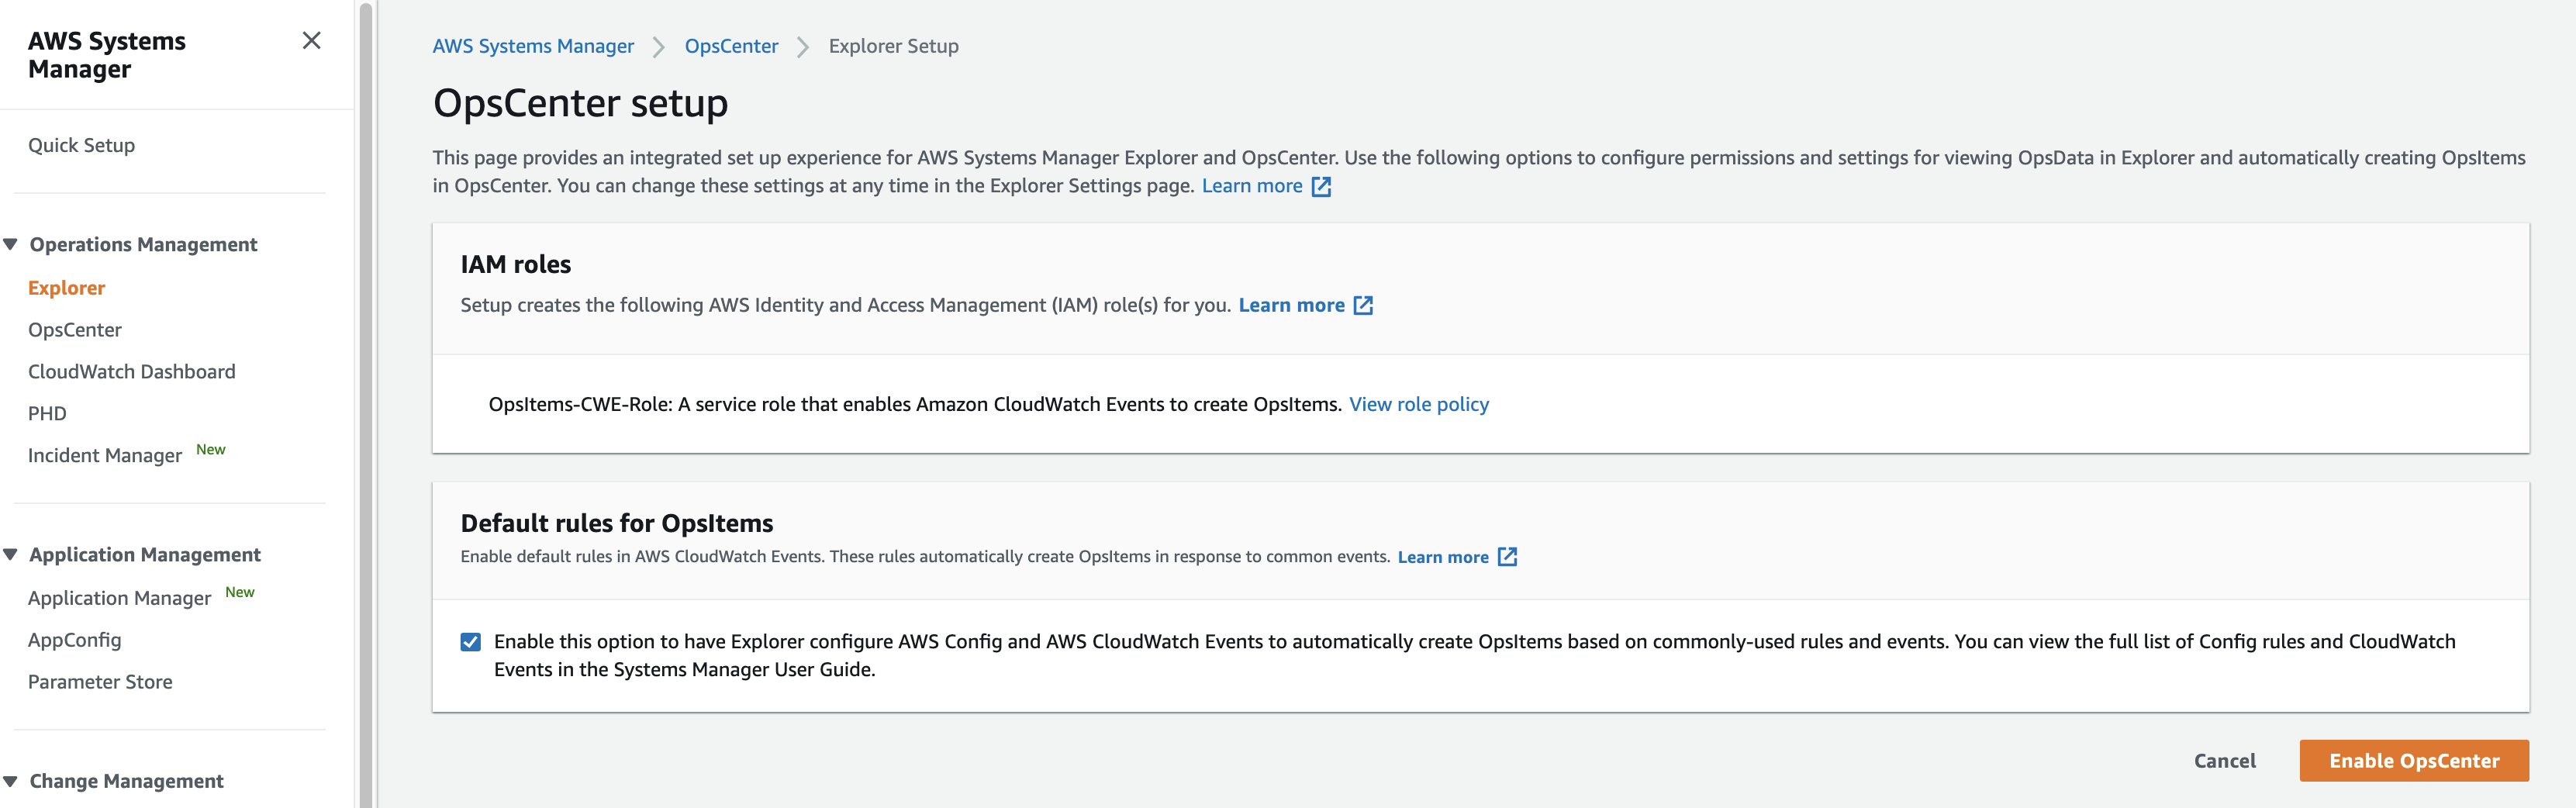 The confirmation page displays a notification Systems Manager will create IAM roles for OpsCenter to enable OpsItems